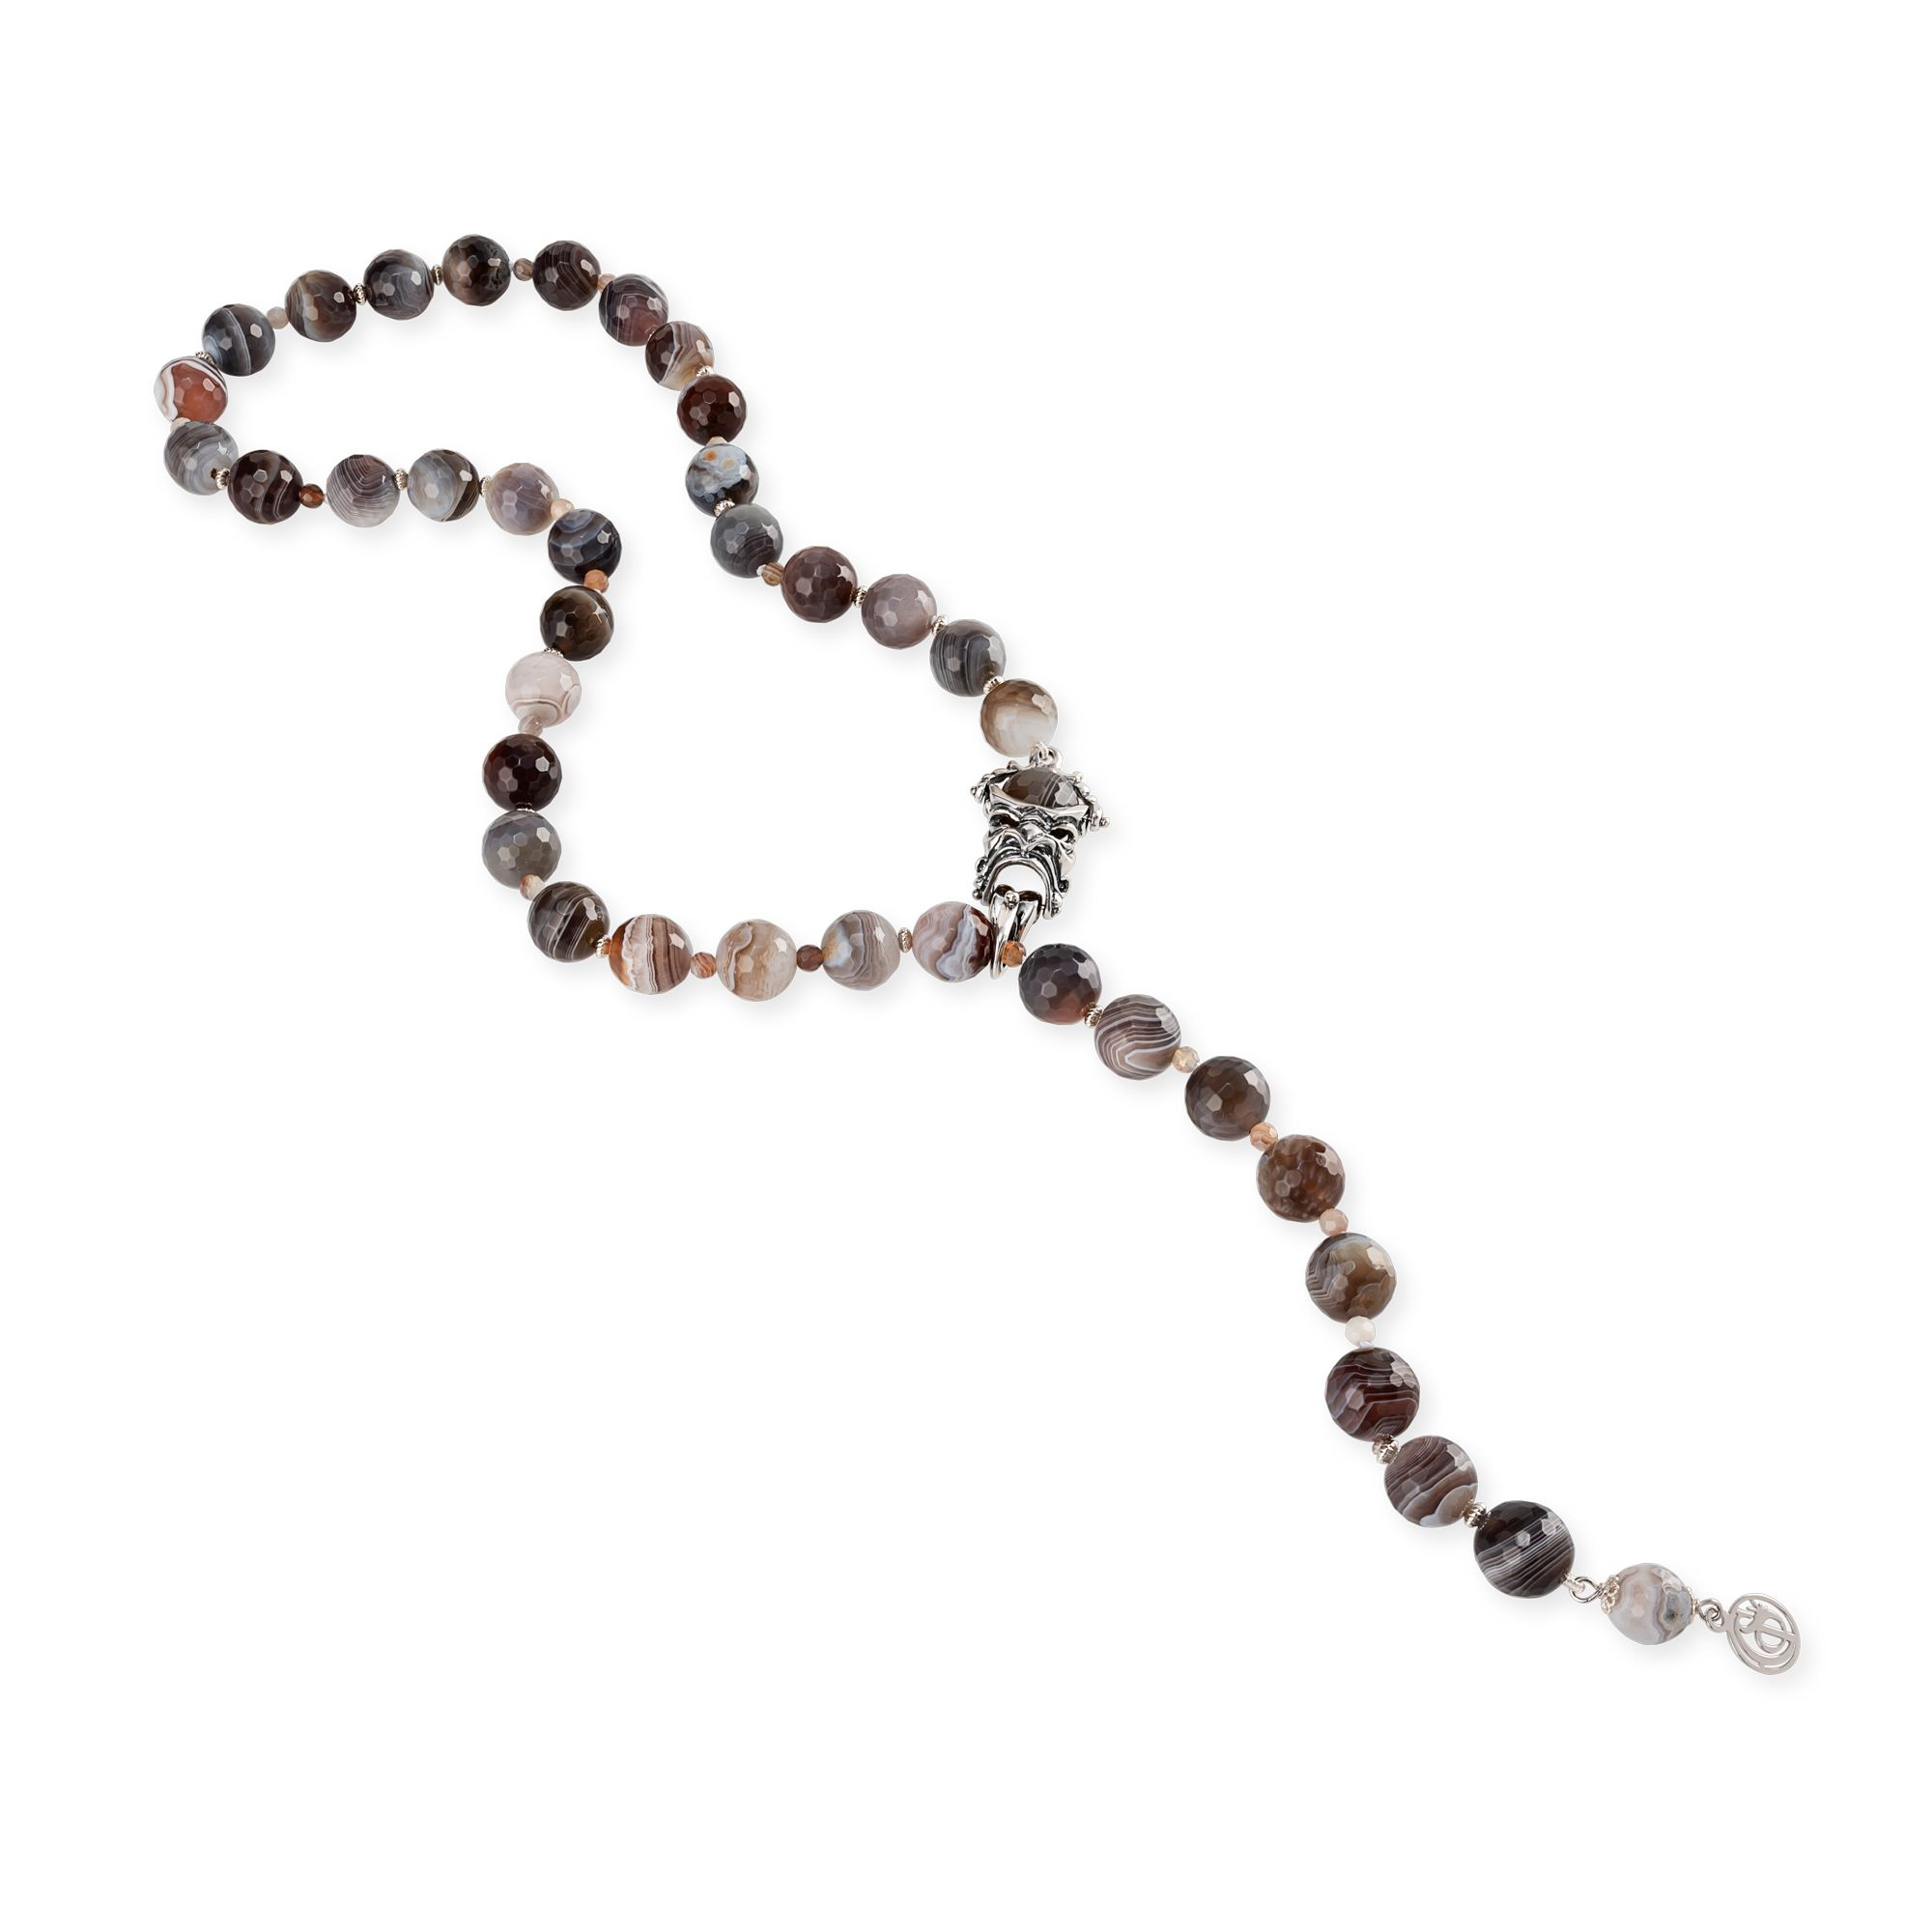 Colored Gemstones Necklace with Mask (28026)